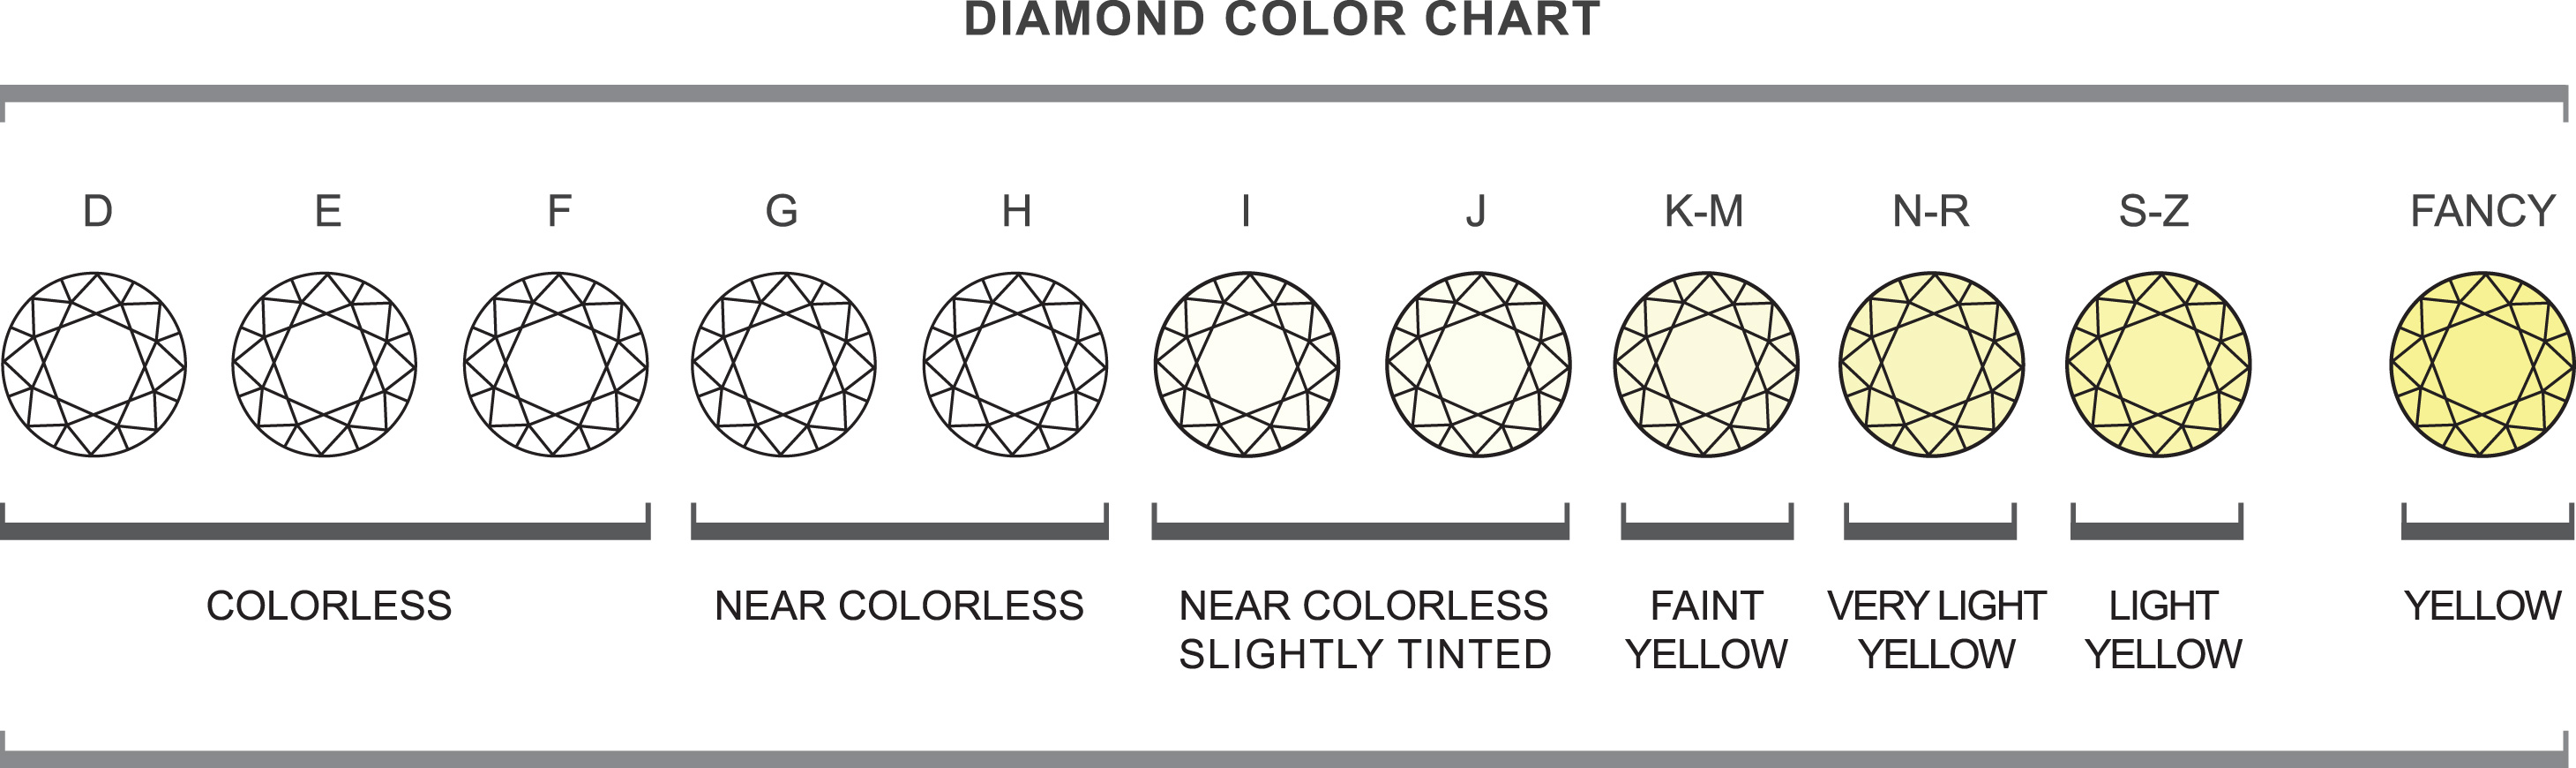 Anthony s jewelers diamond color chart